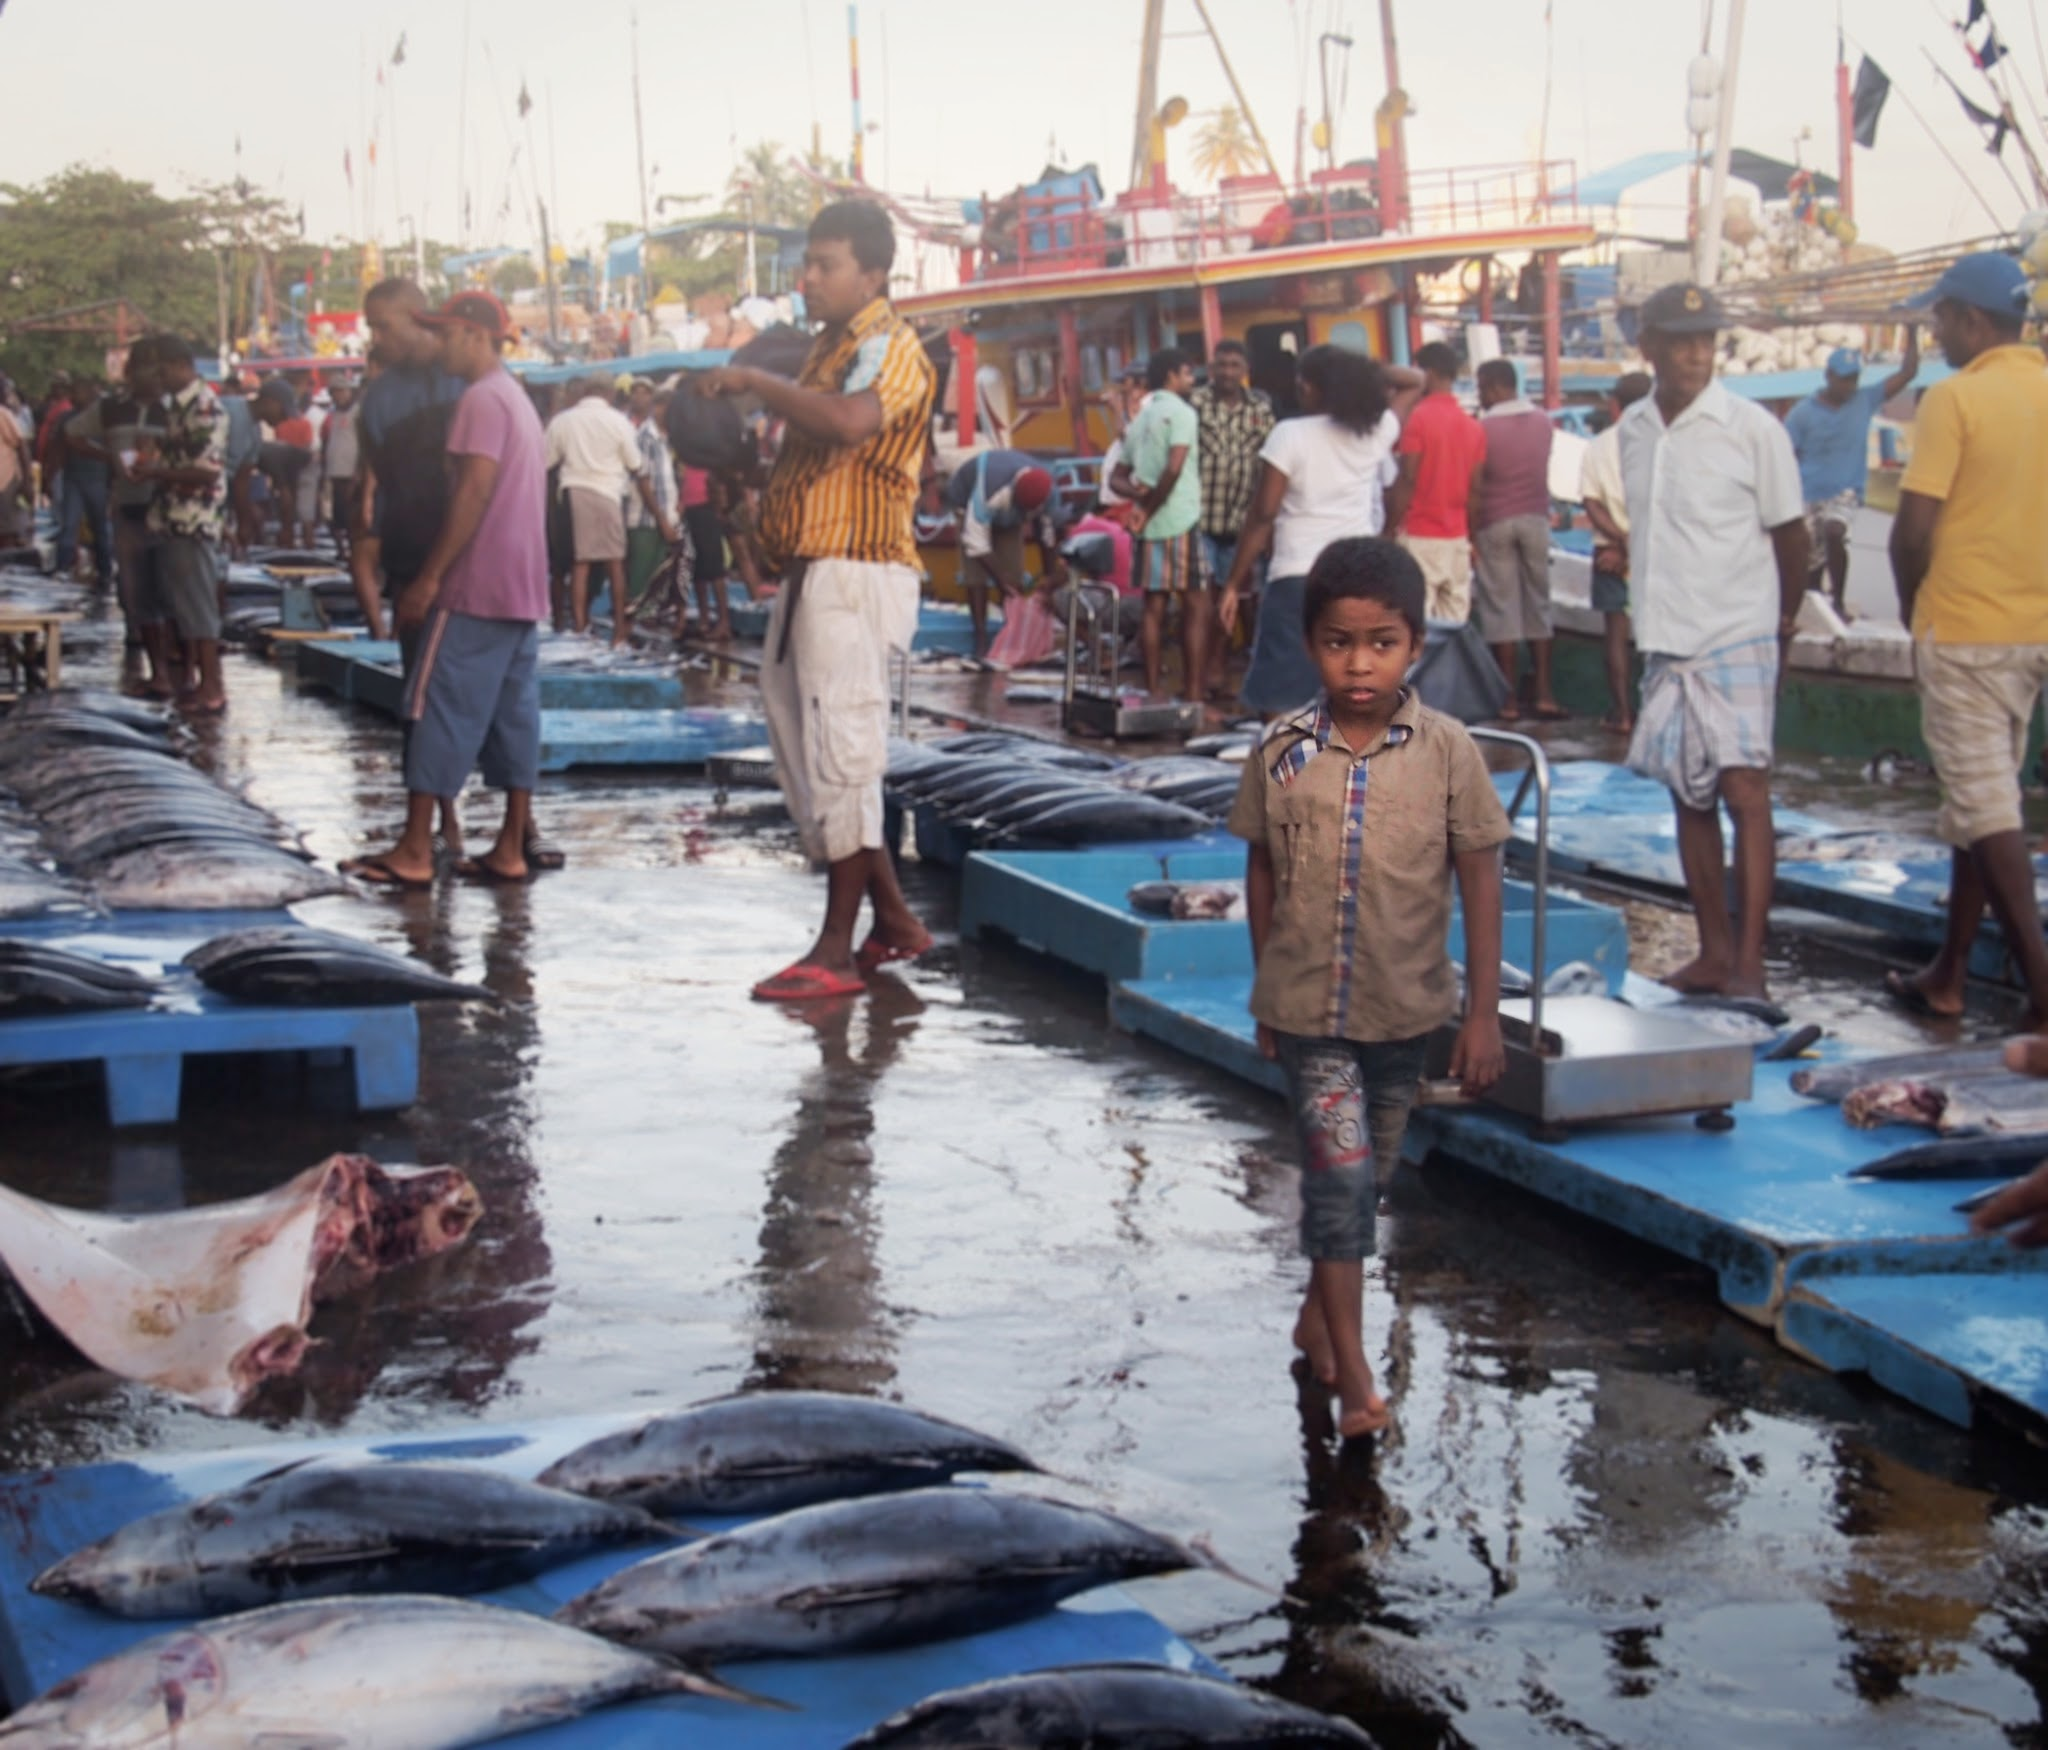 Hawkers selling their goods at Beruwala Harbor